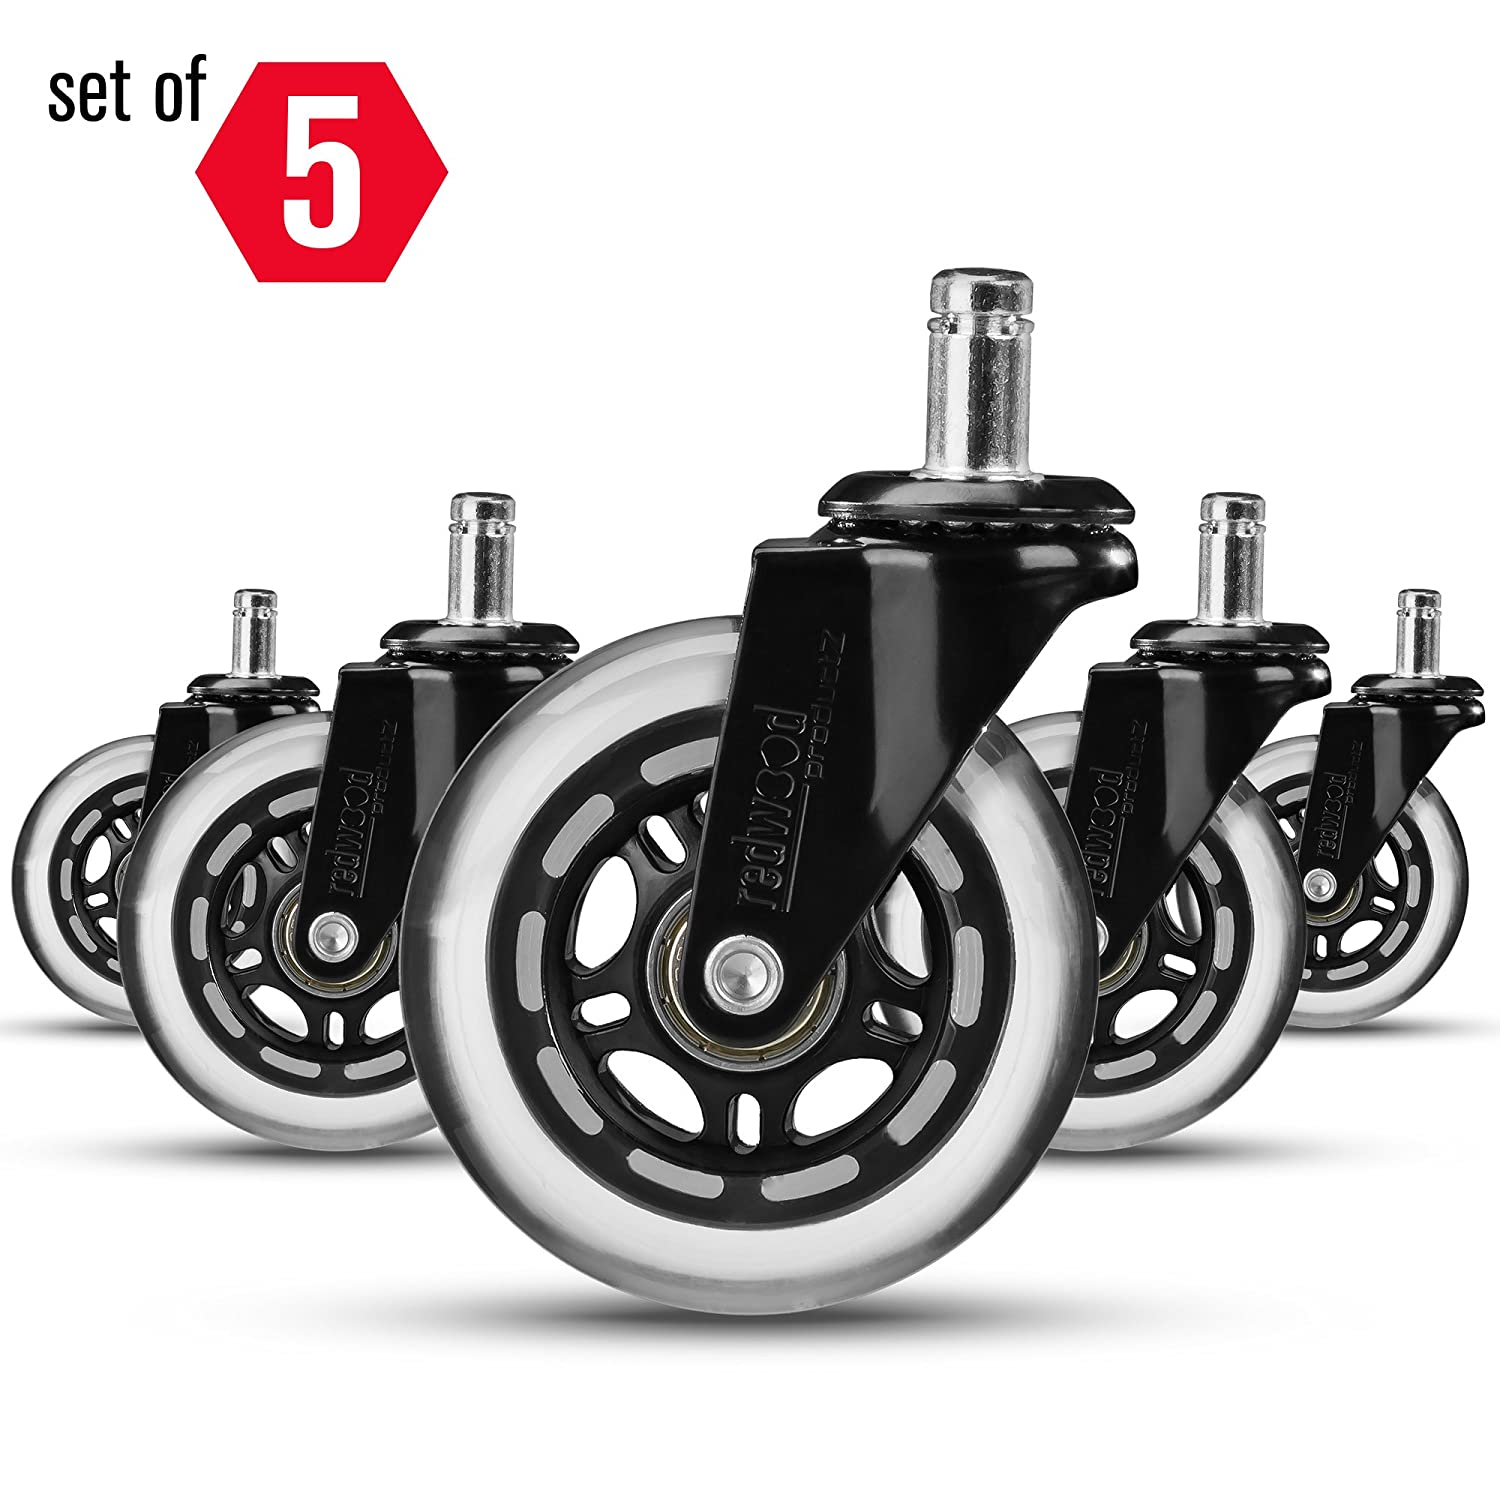 Amazon fice Chair Caster Wheels Replacement Set of 5